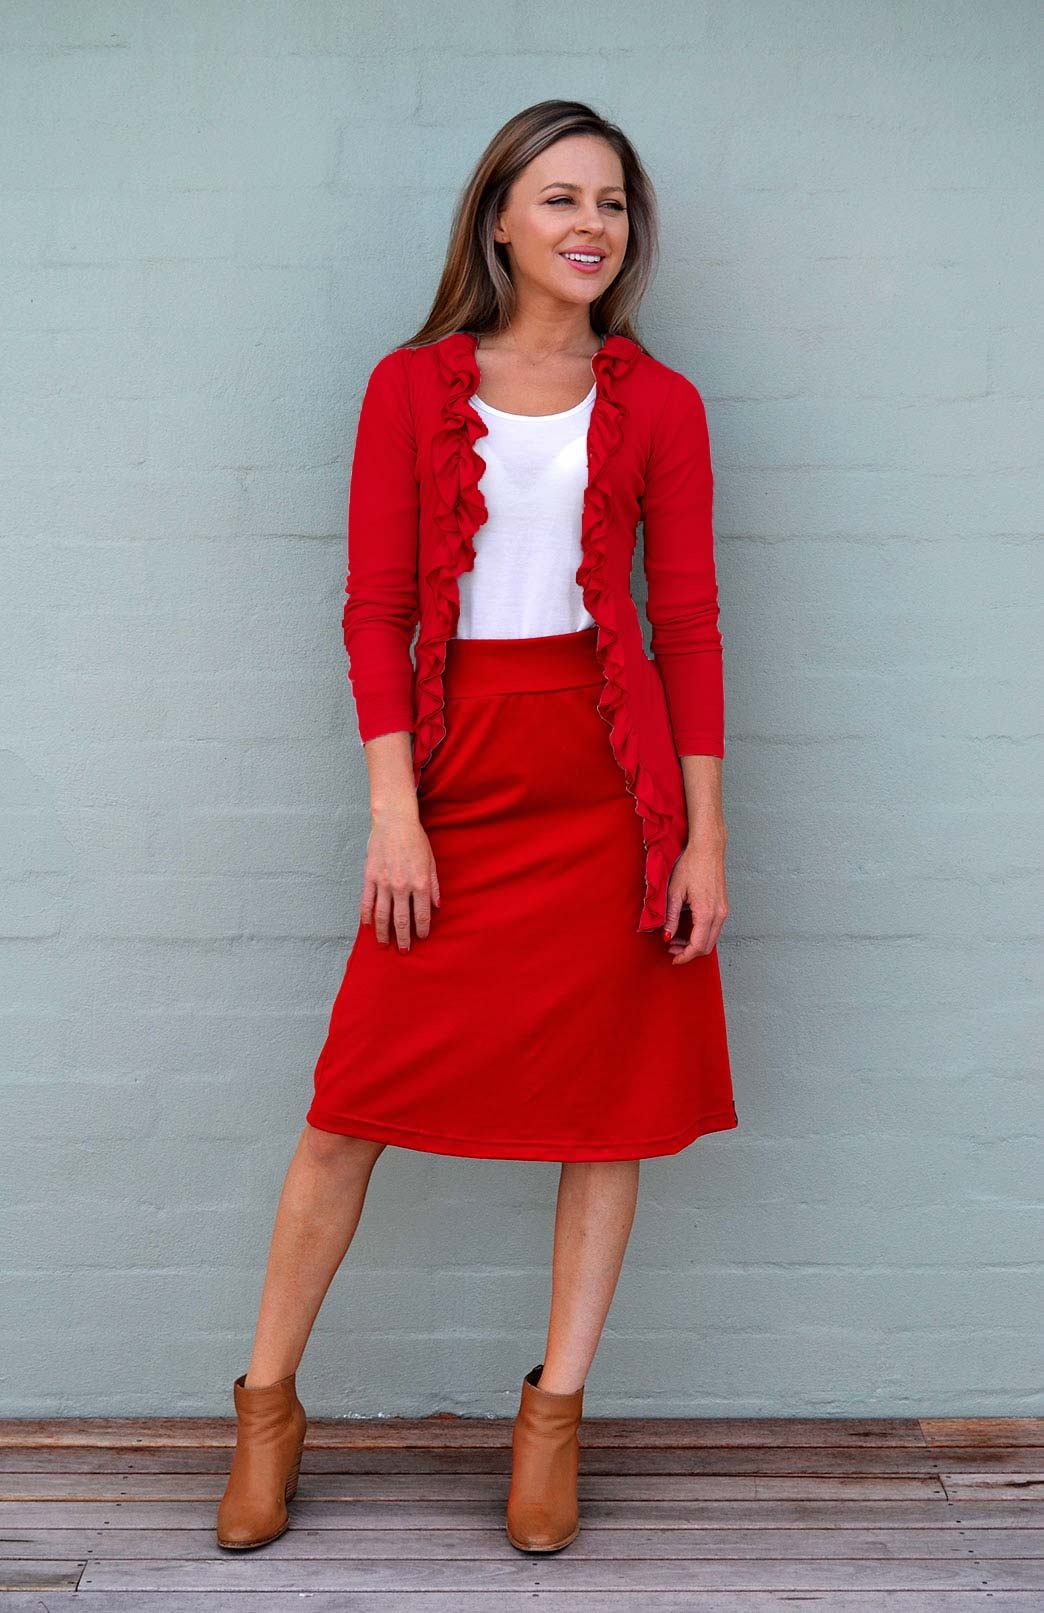 Ruffled Cardigan - Women's Classic Straight Flame Red Wool Cardigan with Ruffled Neckline - Smitten Merino Tasmania Australia